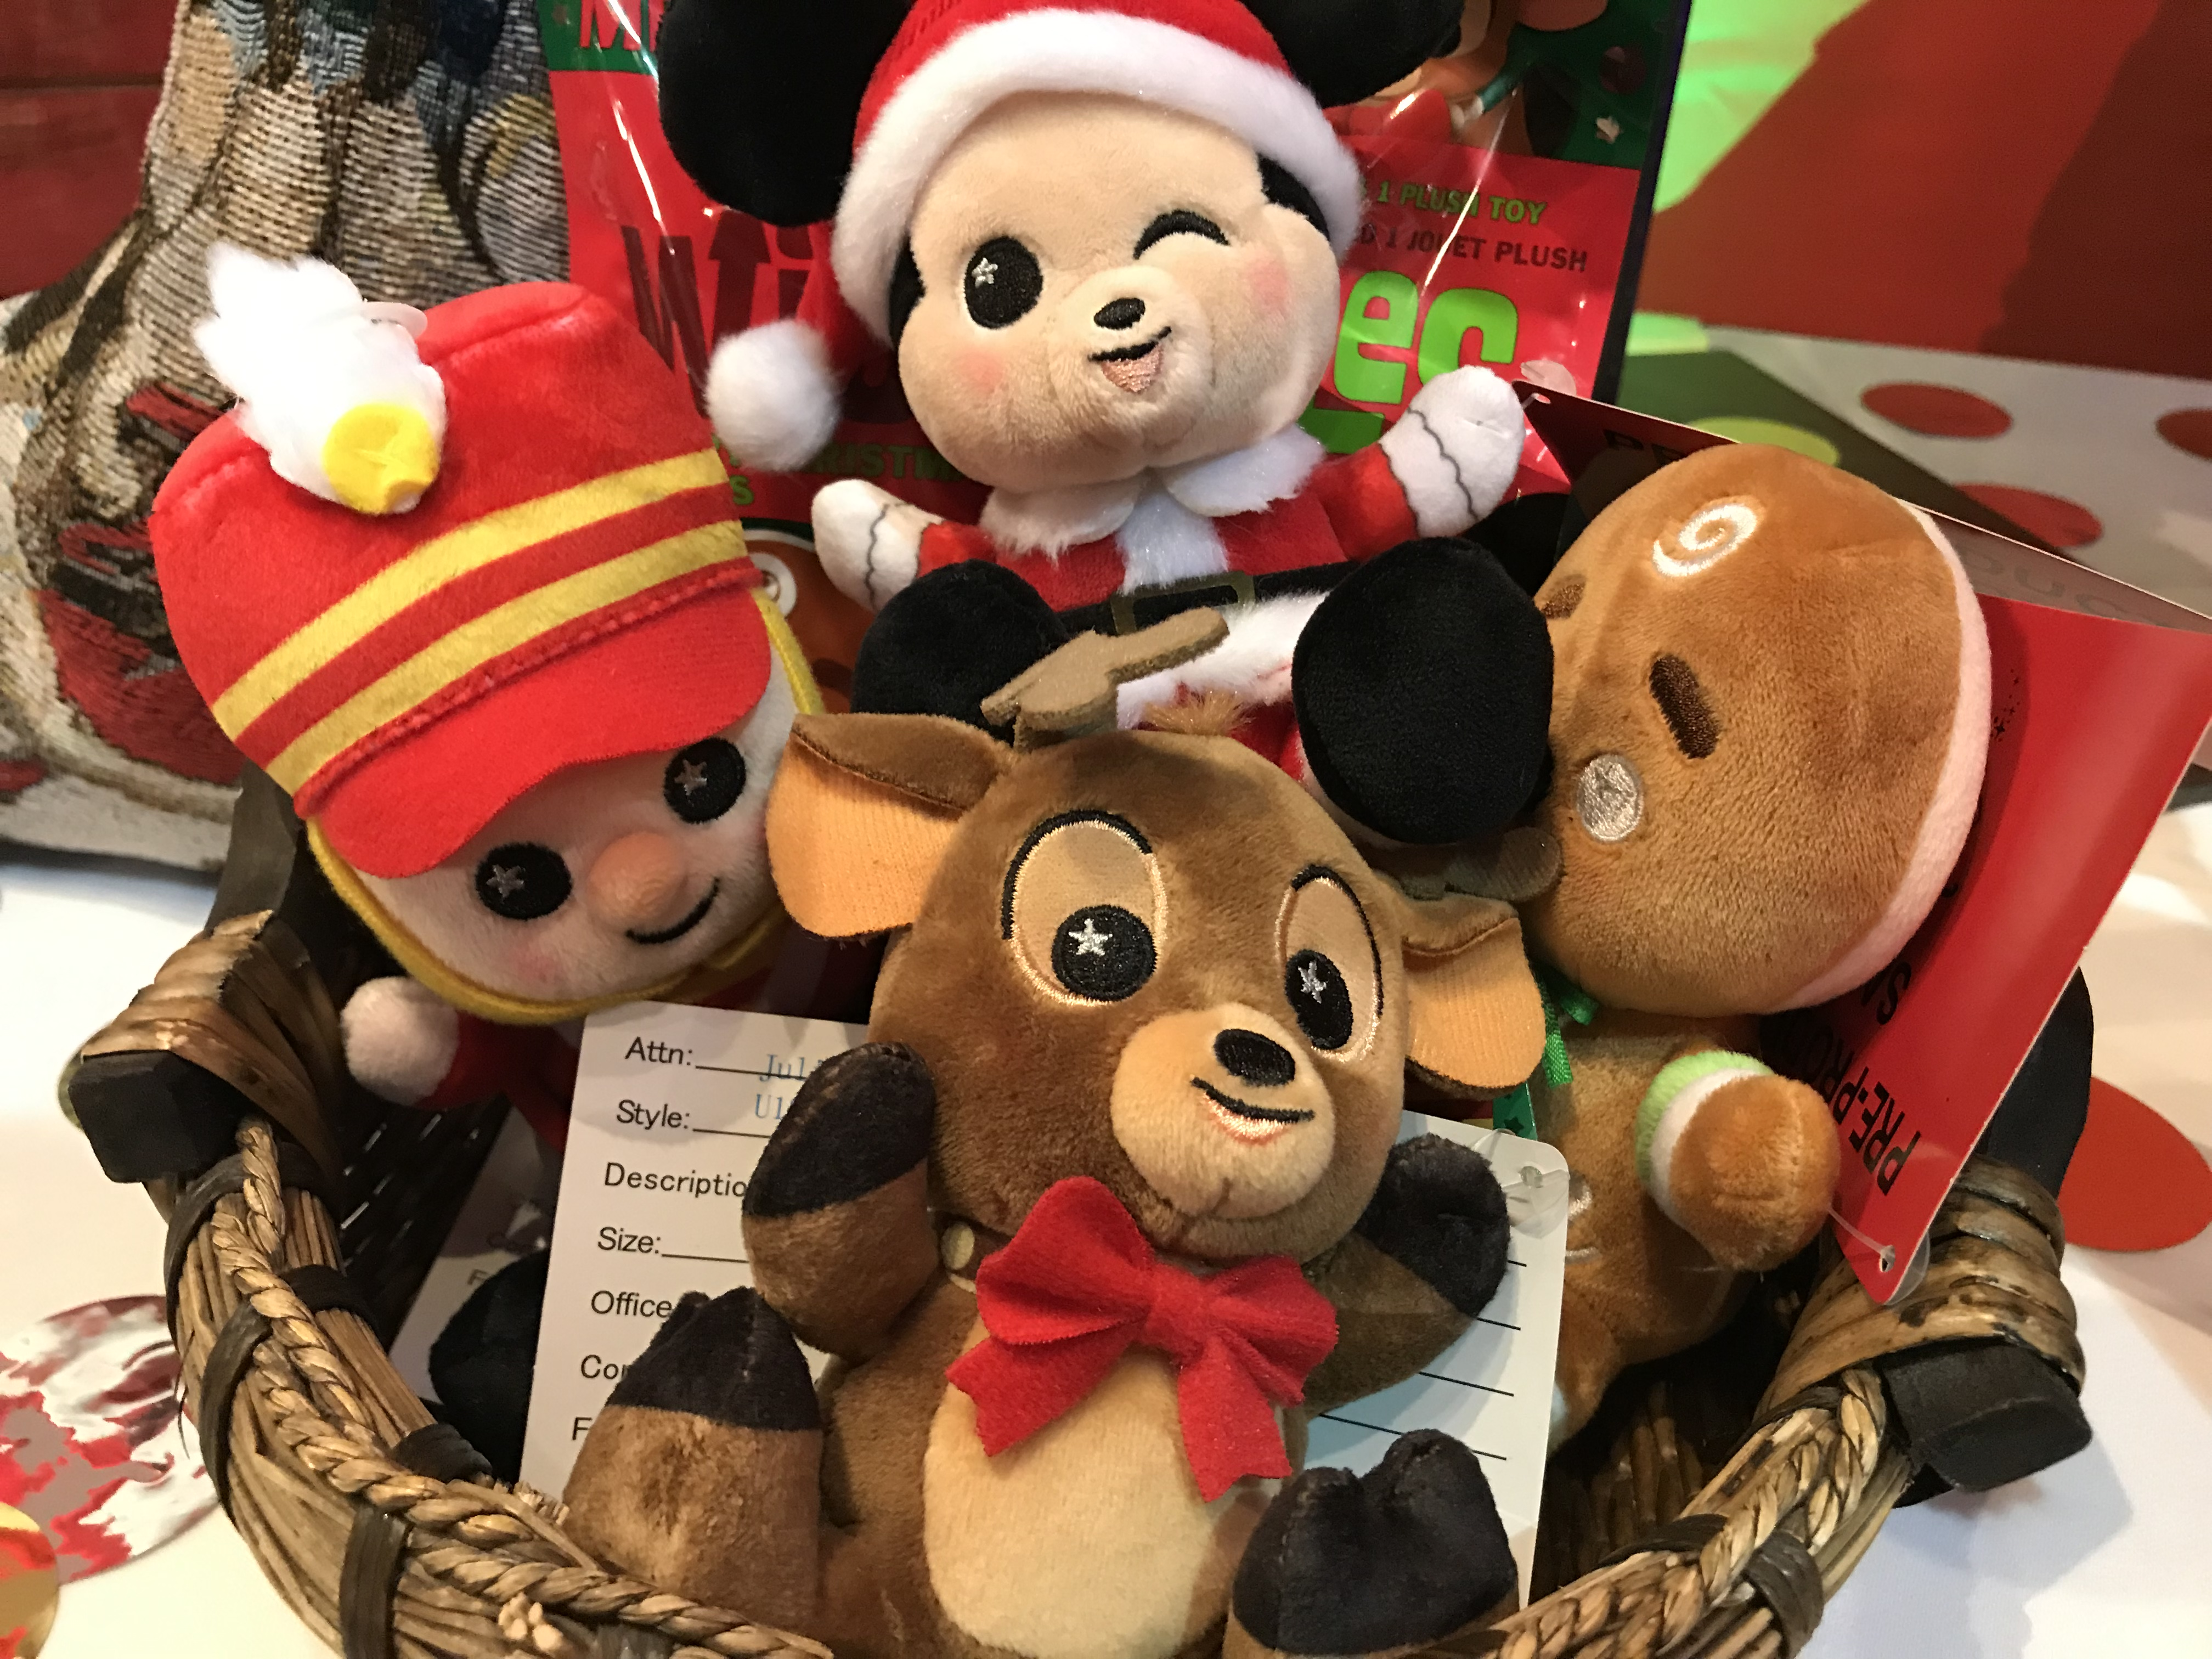 Fabulous Disney Holiday Merchandise Revealed At Disney's Christmas In July 15